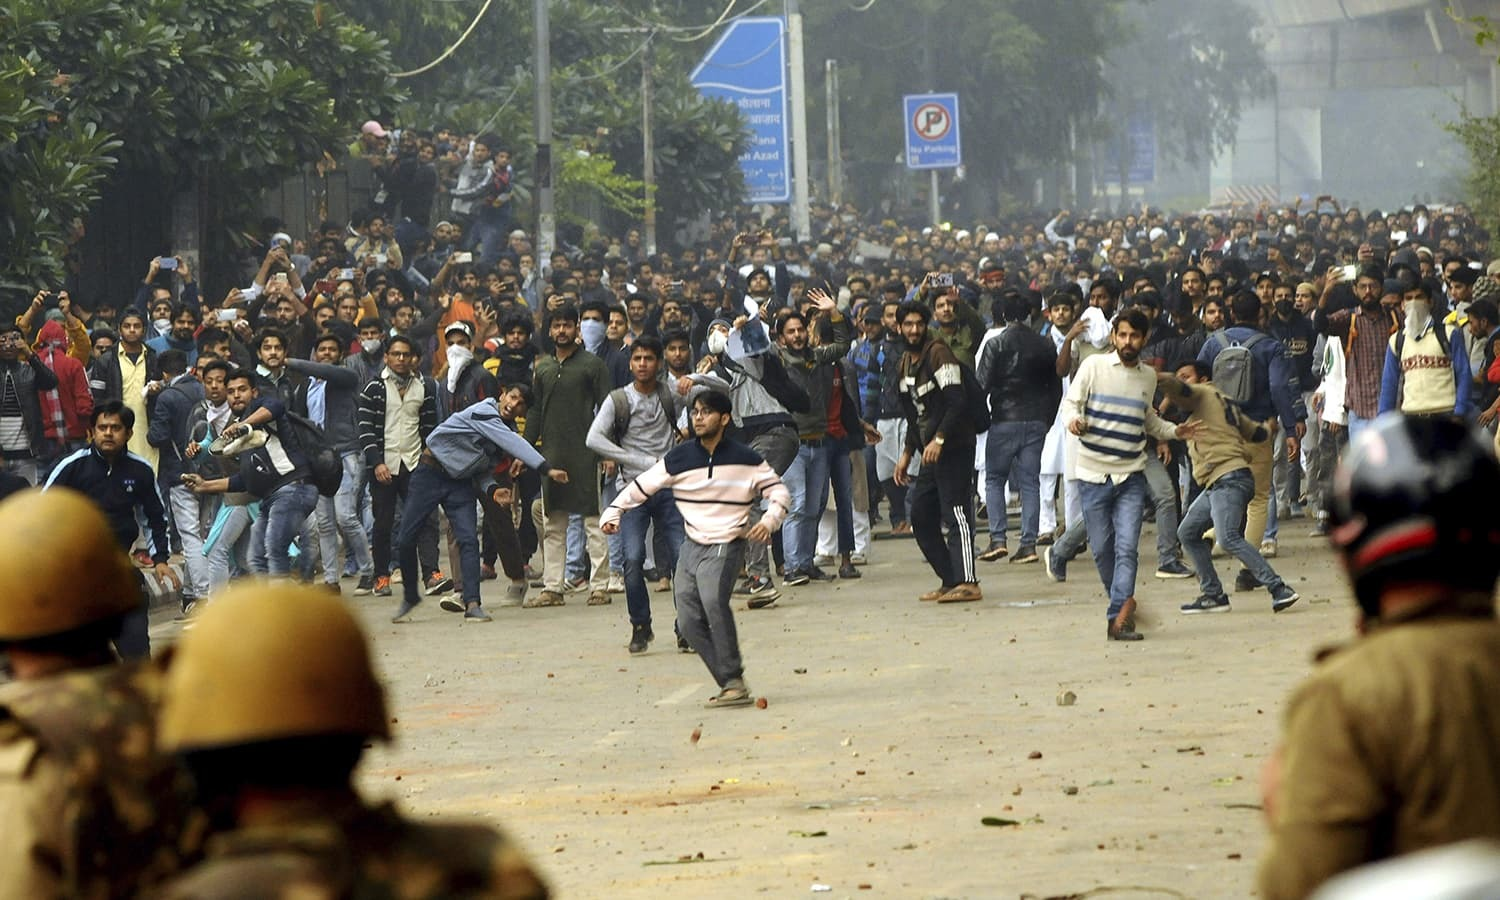 Students shout slogans and pelt stones outside the Jamia Millia Islamia University during a protest against the Citizenship Amendment Bill, in New Delhi, India, Friday, Dec. 13, 2019. Japanese Prime Minister Shinzo Abe is postponing a meeting with Prime Minister Narendra Modi in India's northeast. The region has been the site of continuing protests against a new law that grants citizenship to non-Muslims who migrated from neighboring countries. (AP Photo) — Copyright 2019 The Associated Press. All rights reserved.